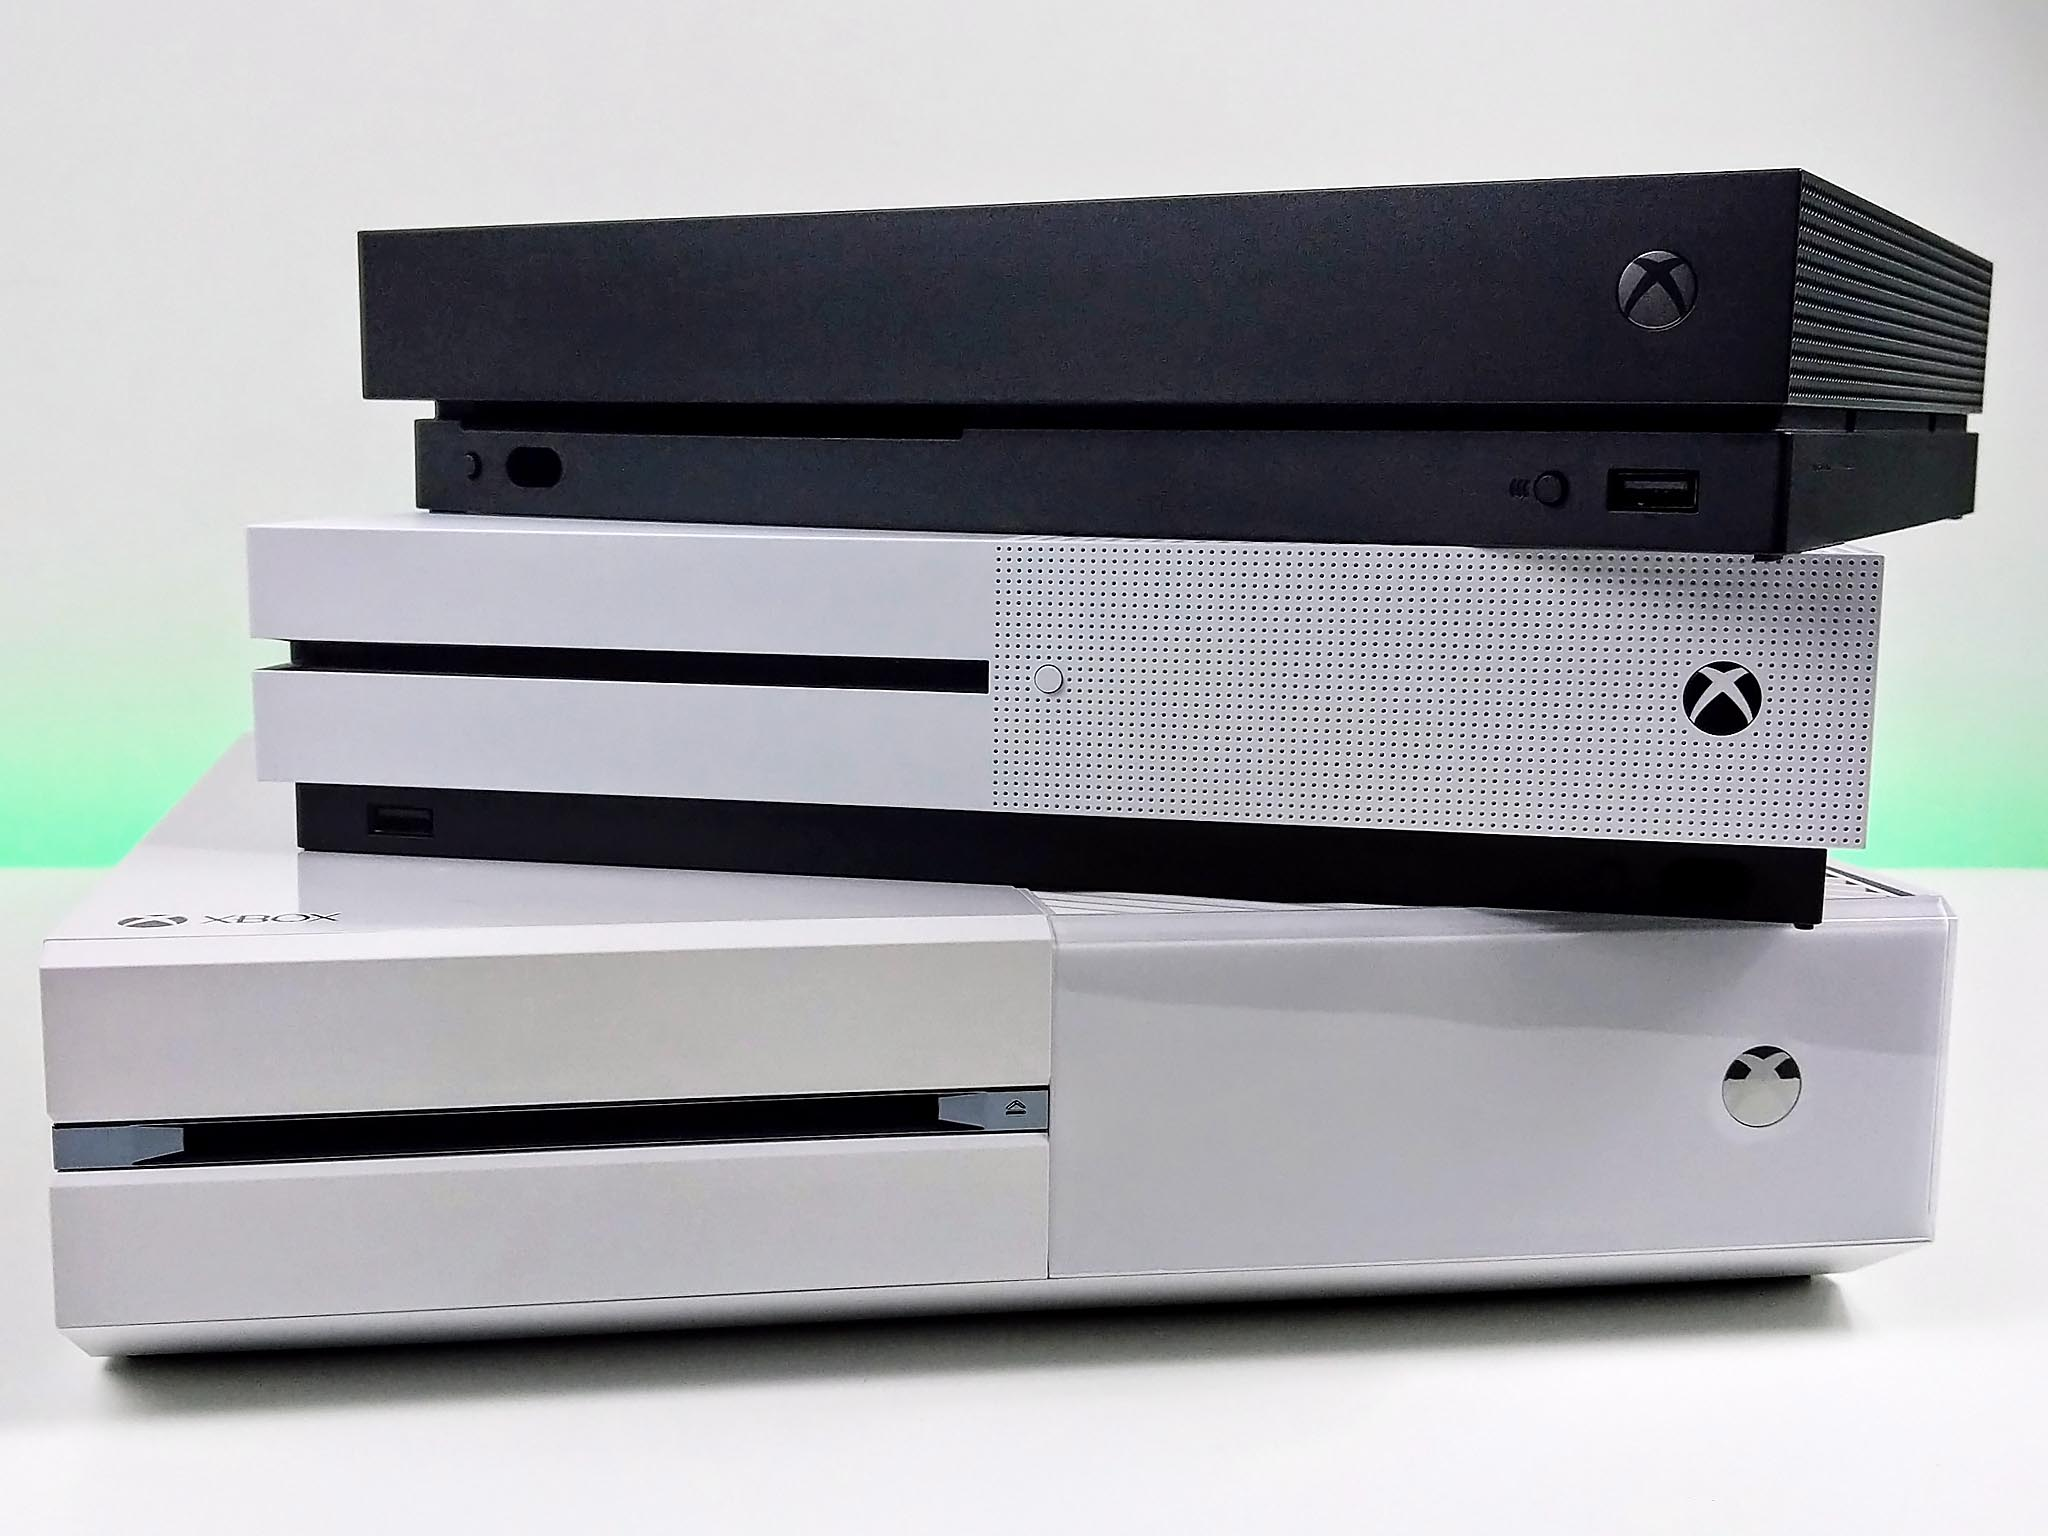 microsoft has sold three revisions of the xbox one over its four years on the market each major revision of the console has delivered various visual  [ 1600 x 1200 Pixel ]